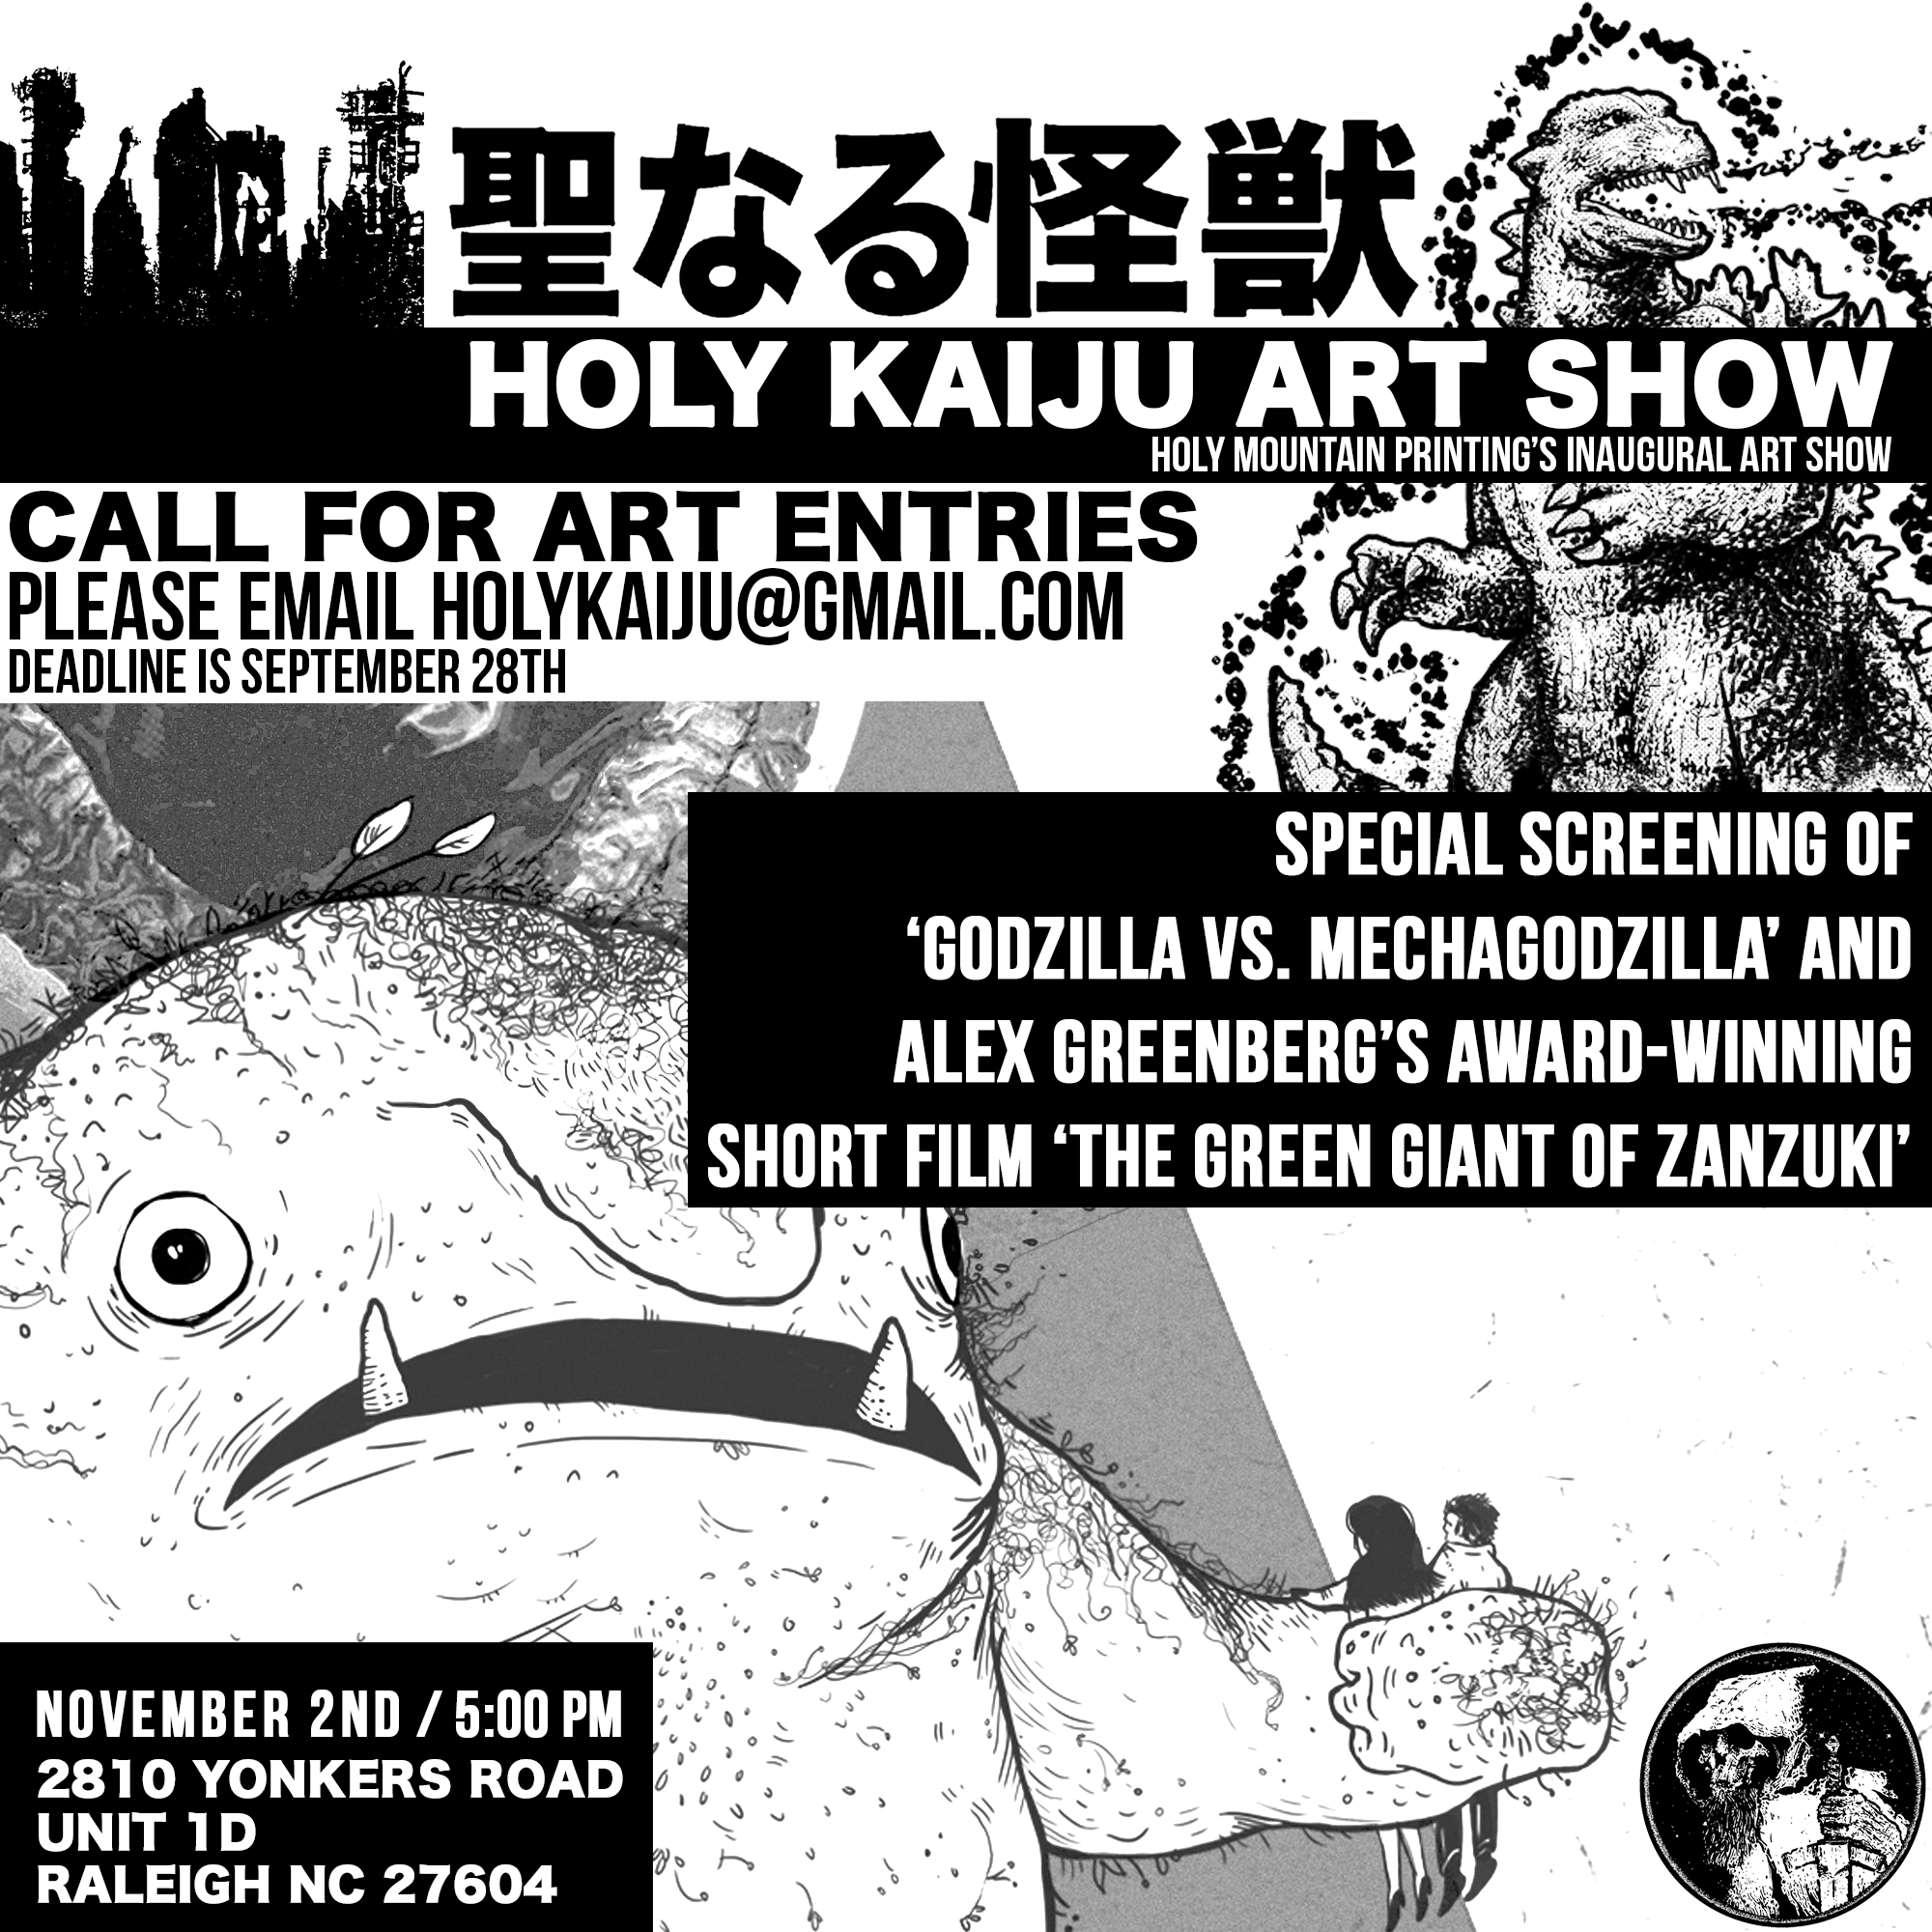 HOLY KAIJU ART SHOW